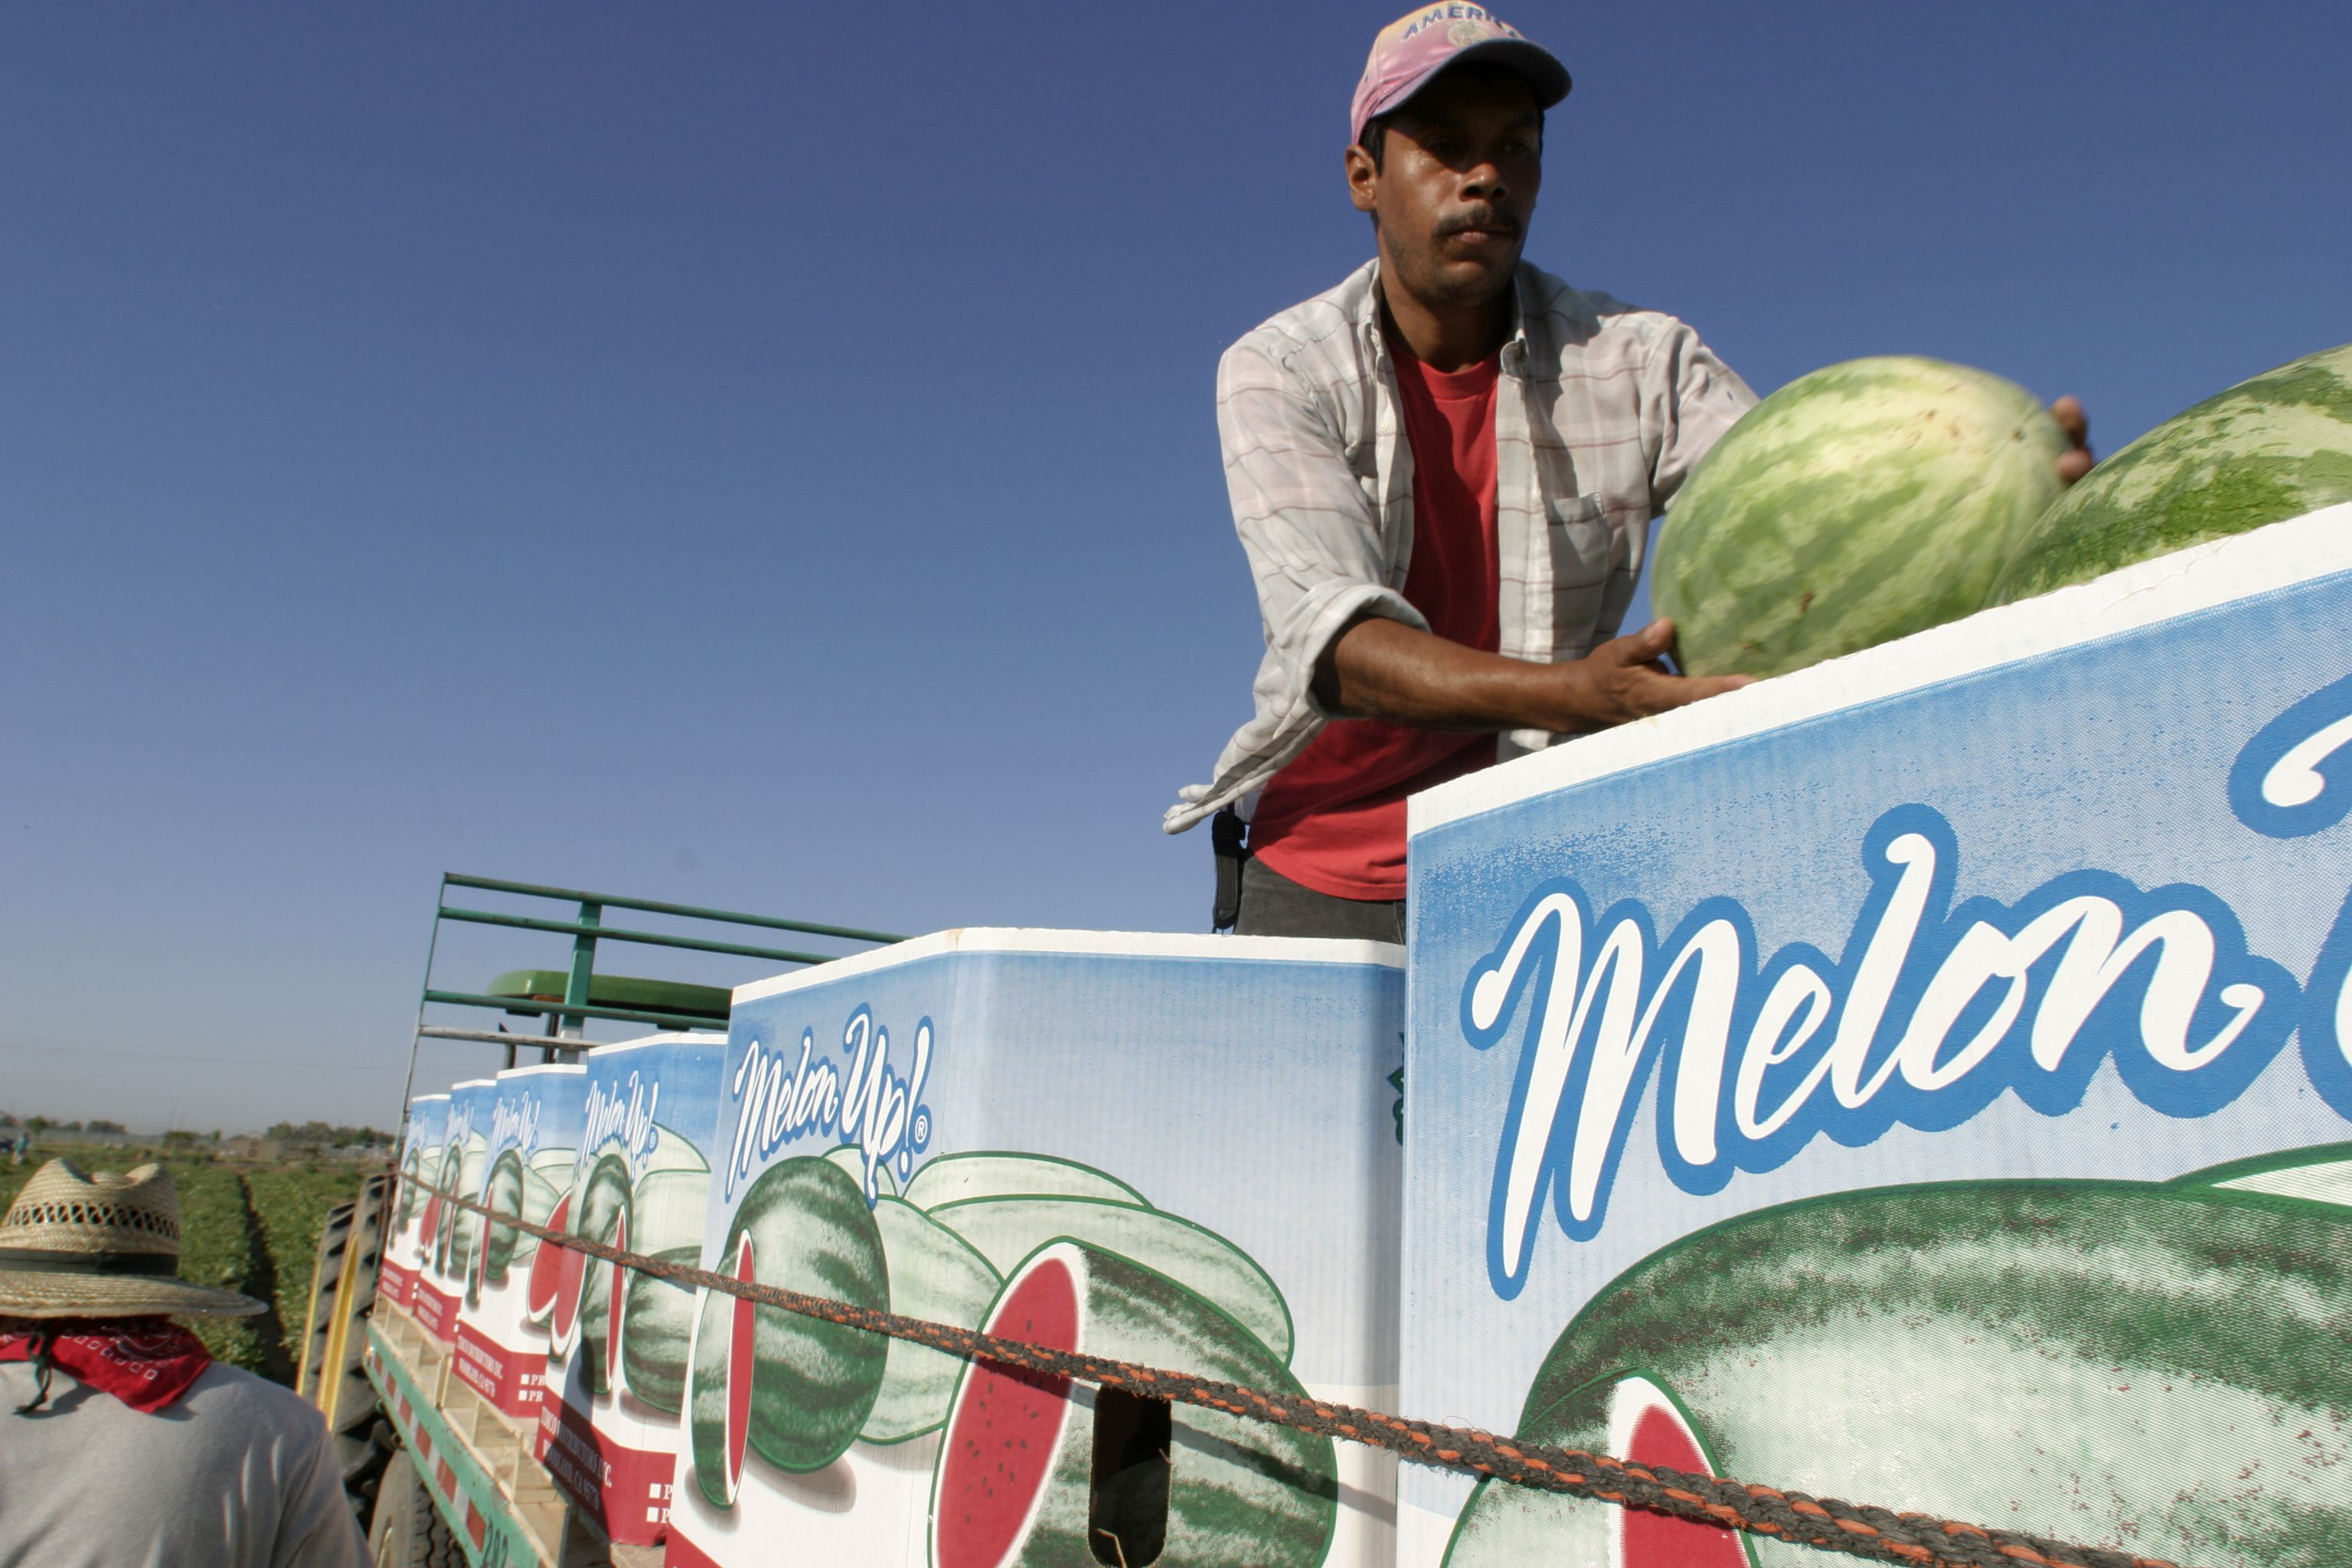 Arizona Is Good At Growing Melons All cantaloupes produced in california are grown in regions where the weather is hot and dry. arizona is good at growing melons